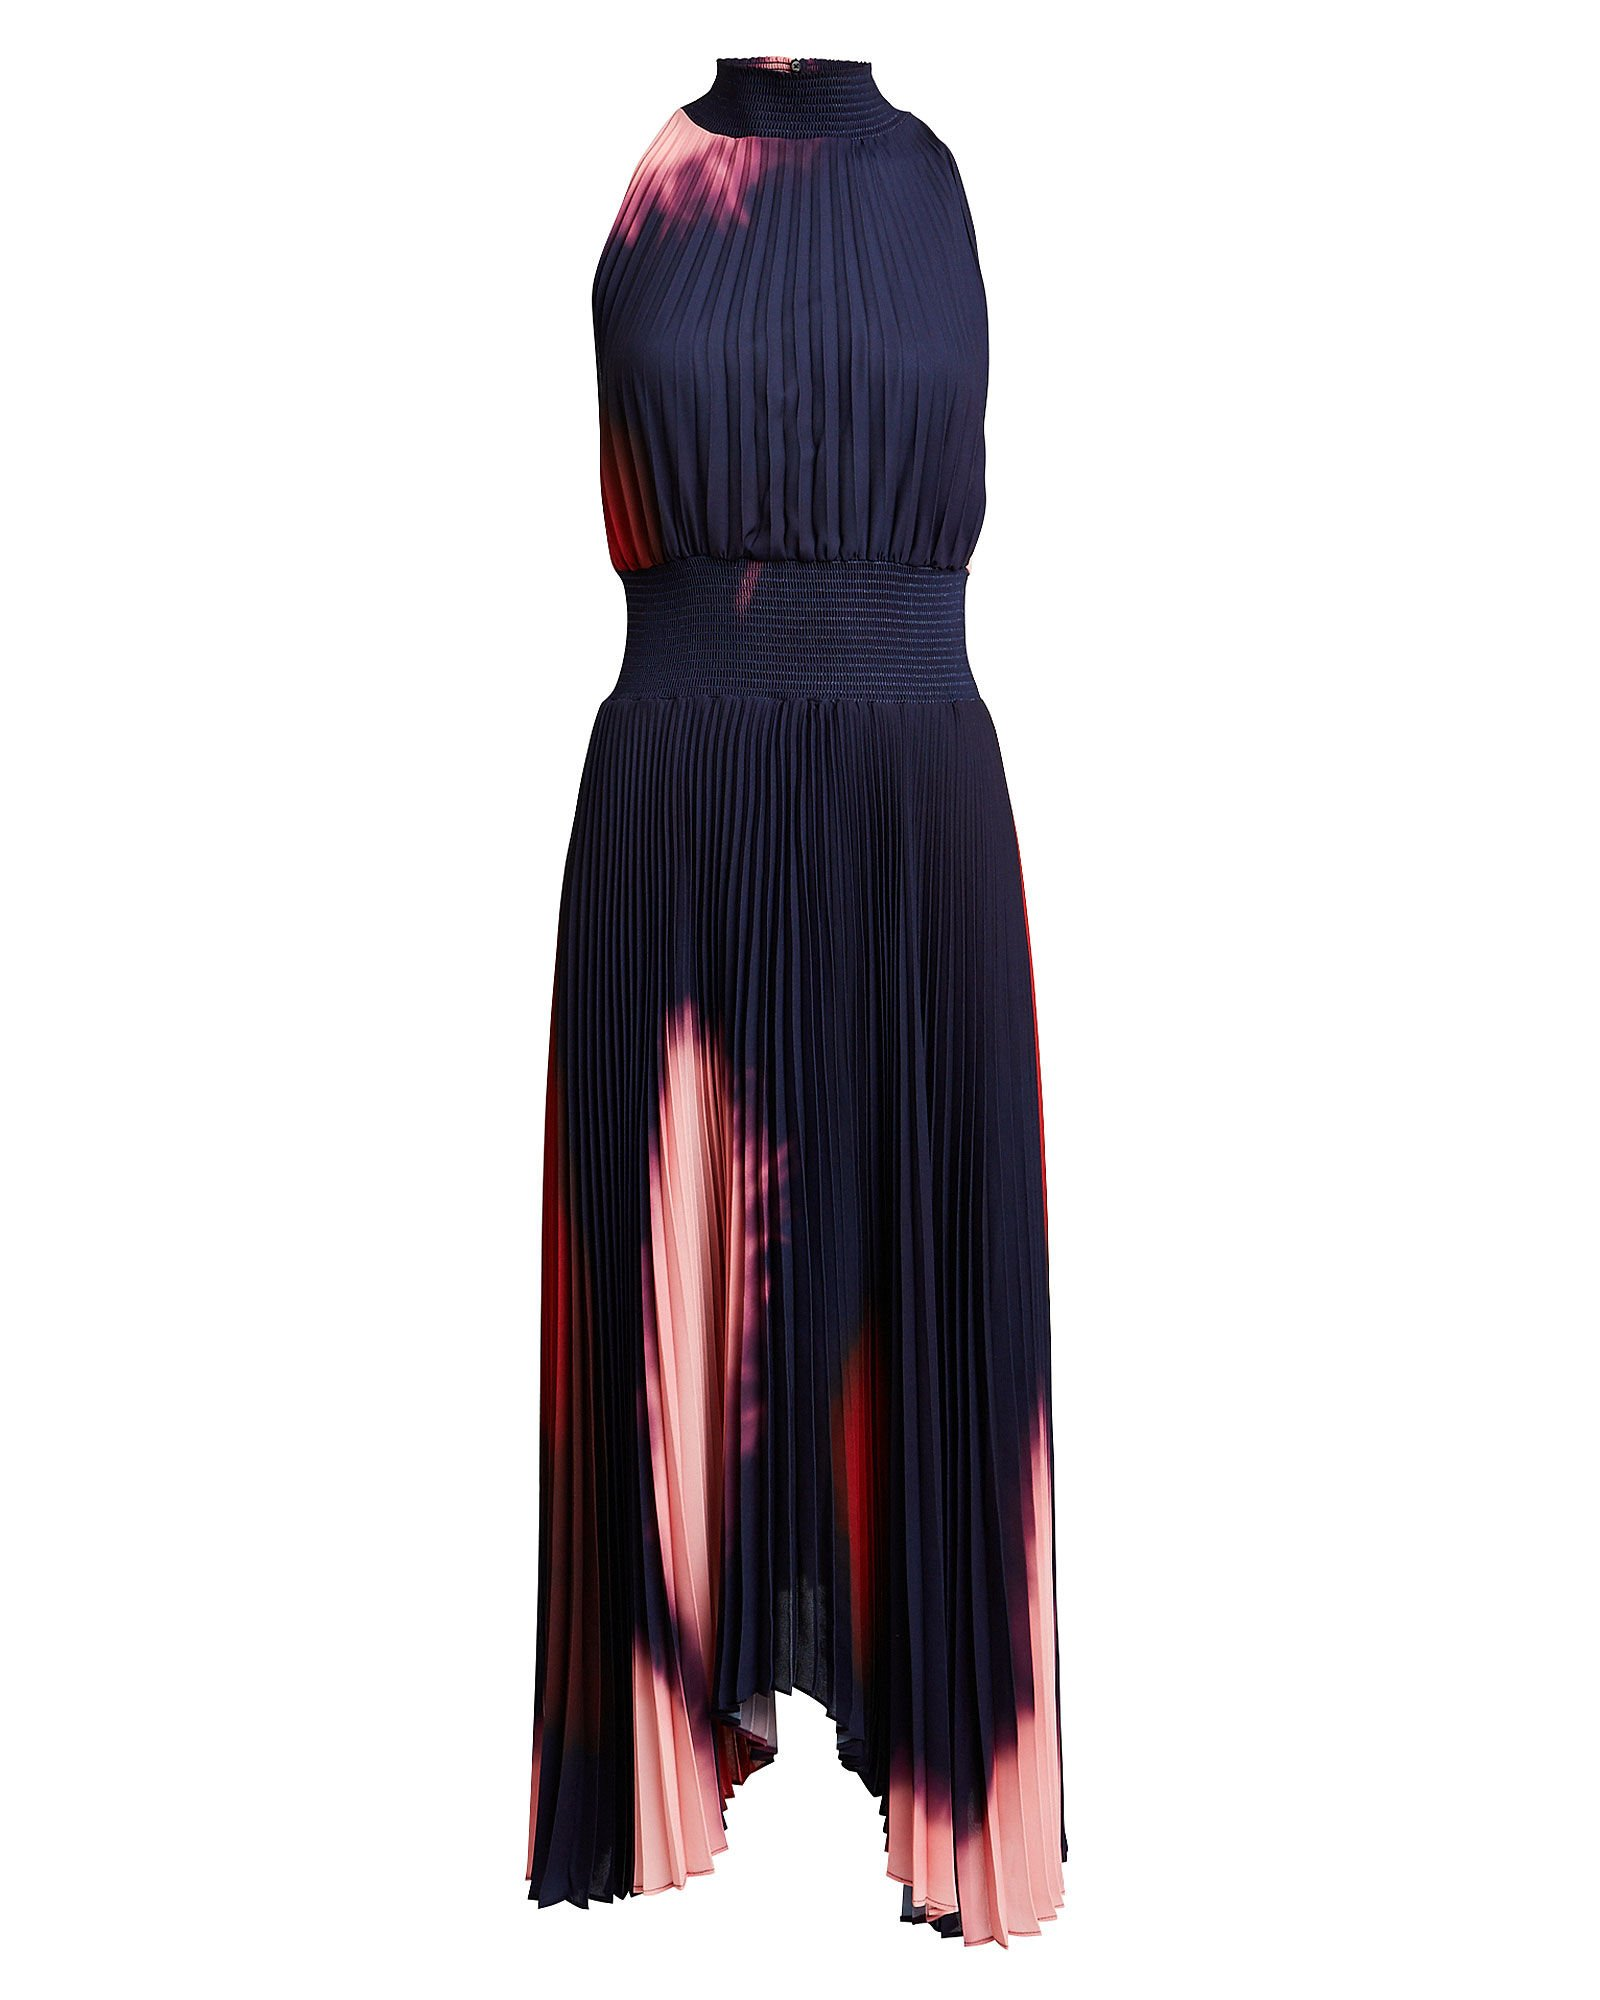 Renzo Ombré Tie-Dye Dress, MIDNIGHT/OMBRE, hi-res